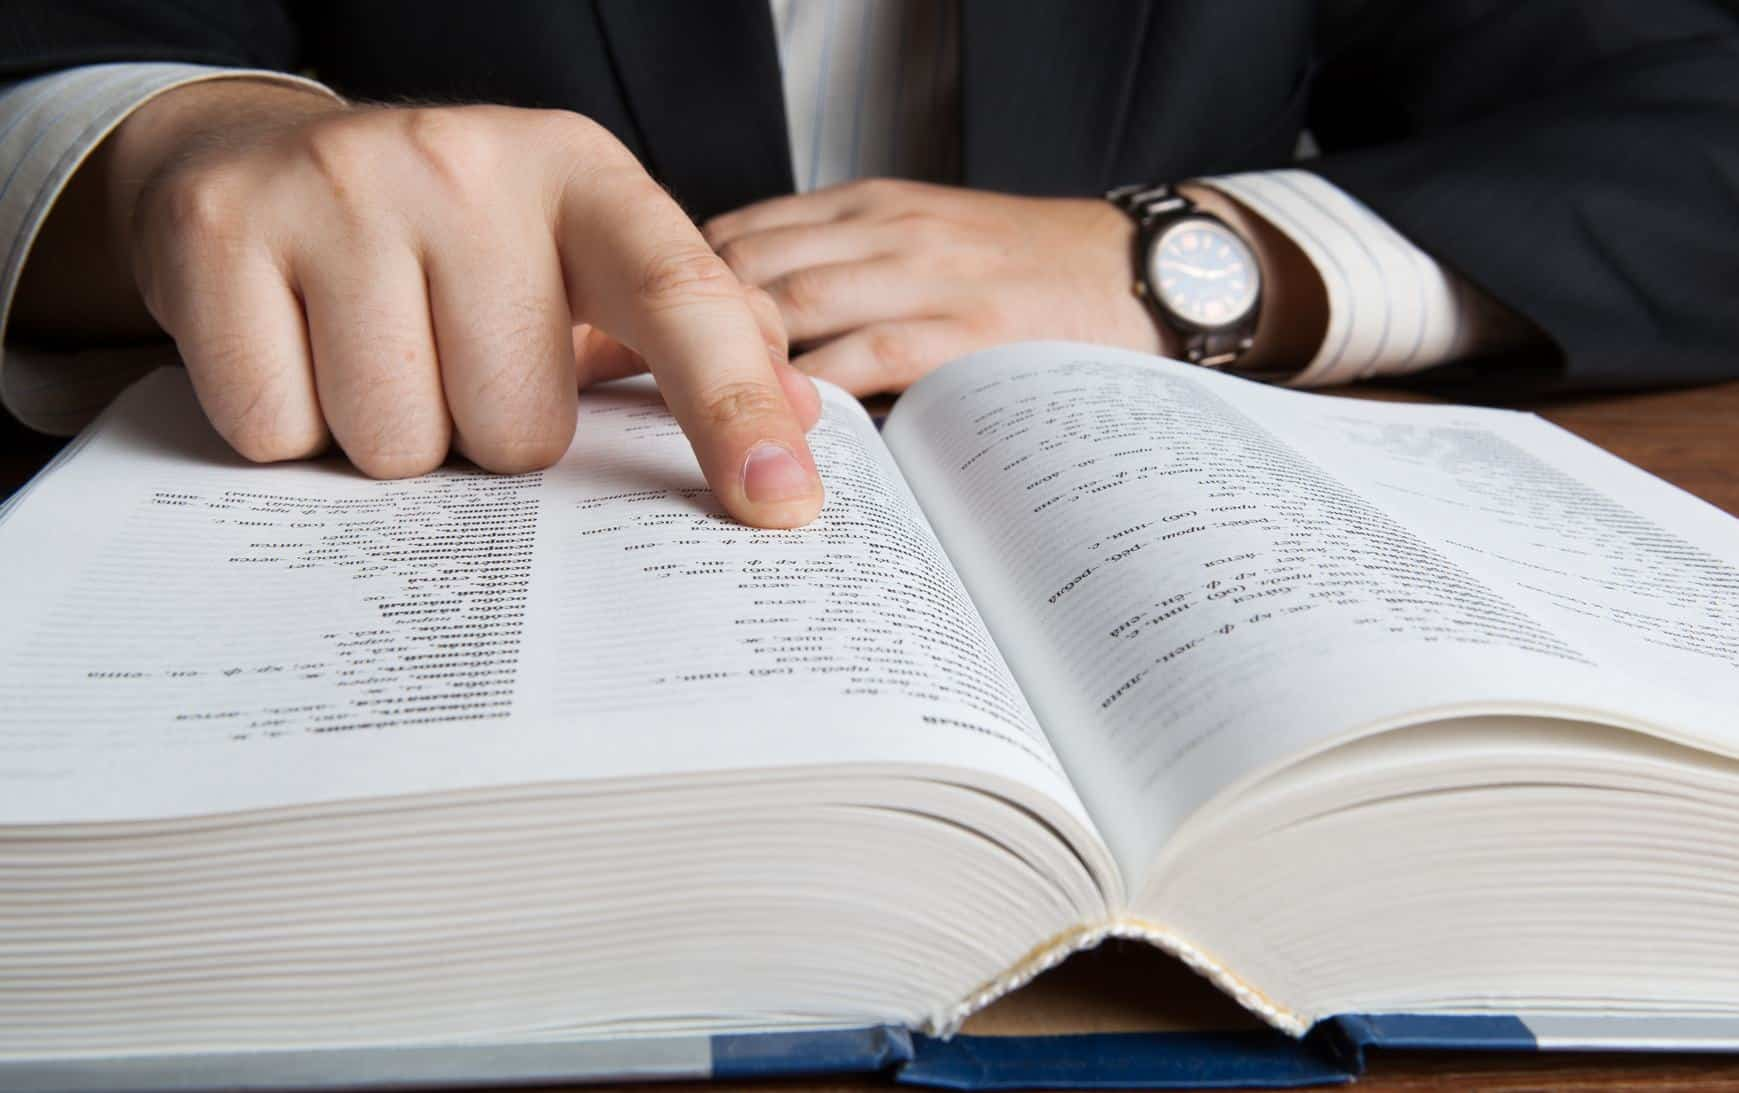 man looking in the large dictionary